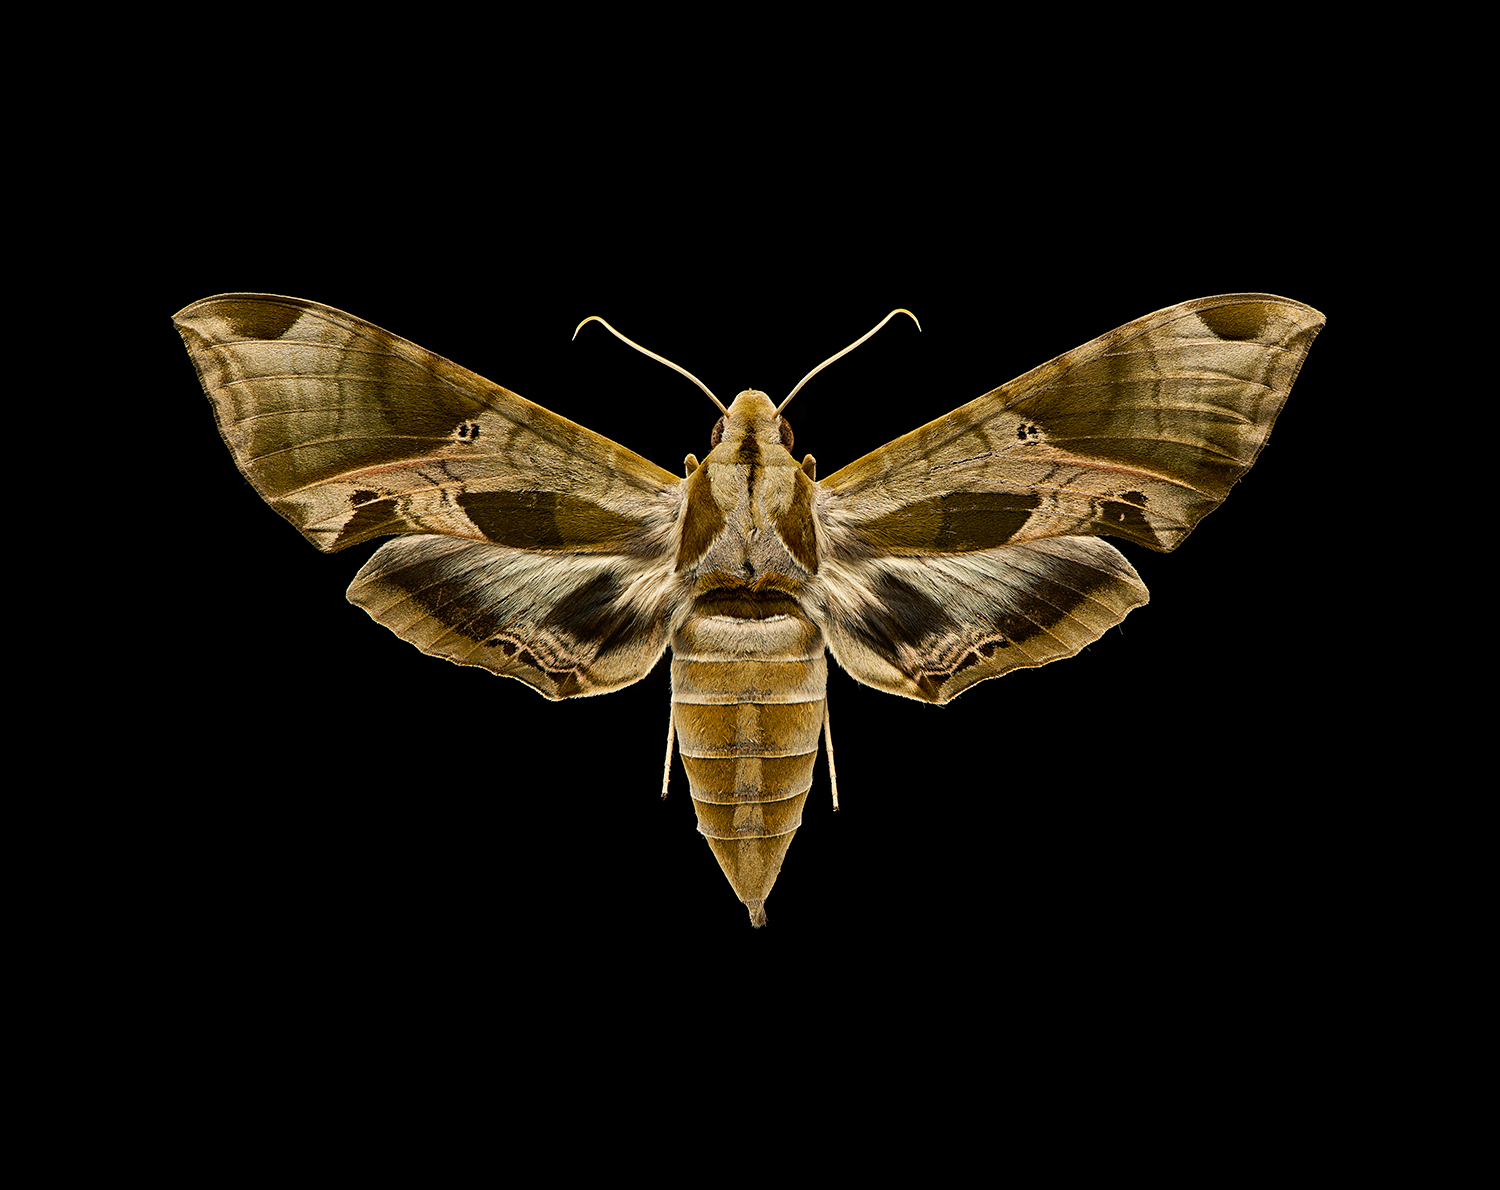 Eumorpha pandorus moth. Entomology photography. Toronto commercial photographer. Newmarket commercial photographer. Toronto product photographer